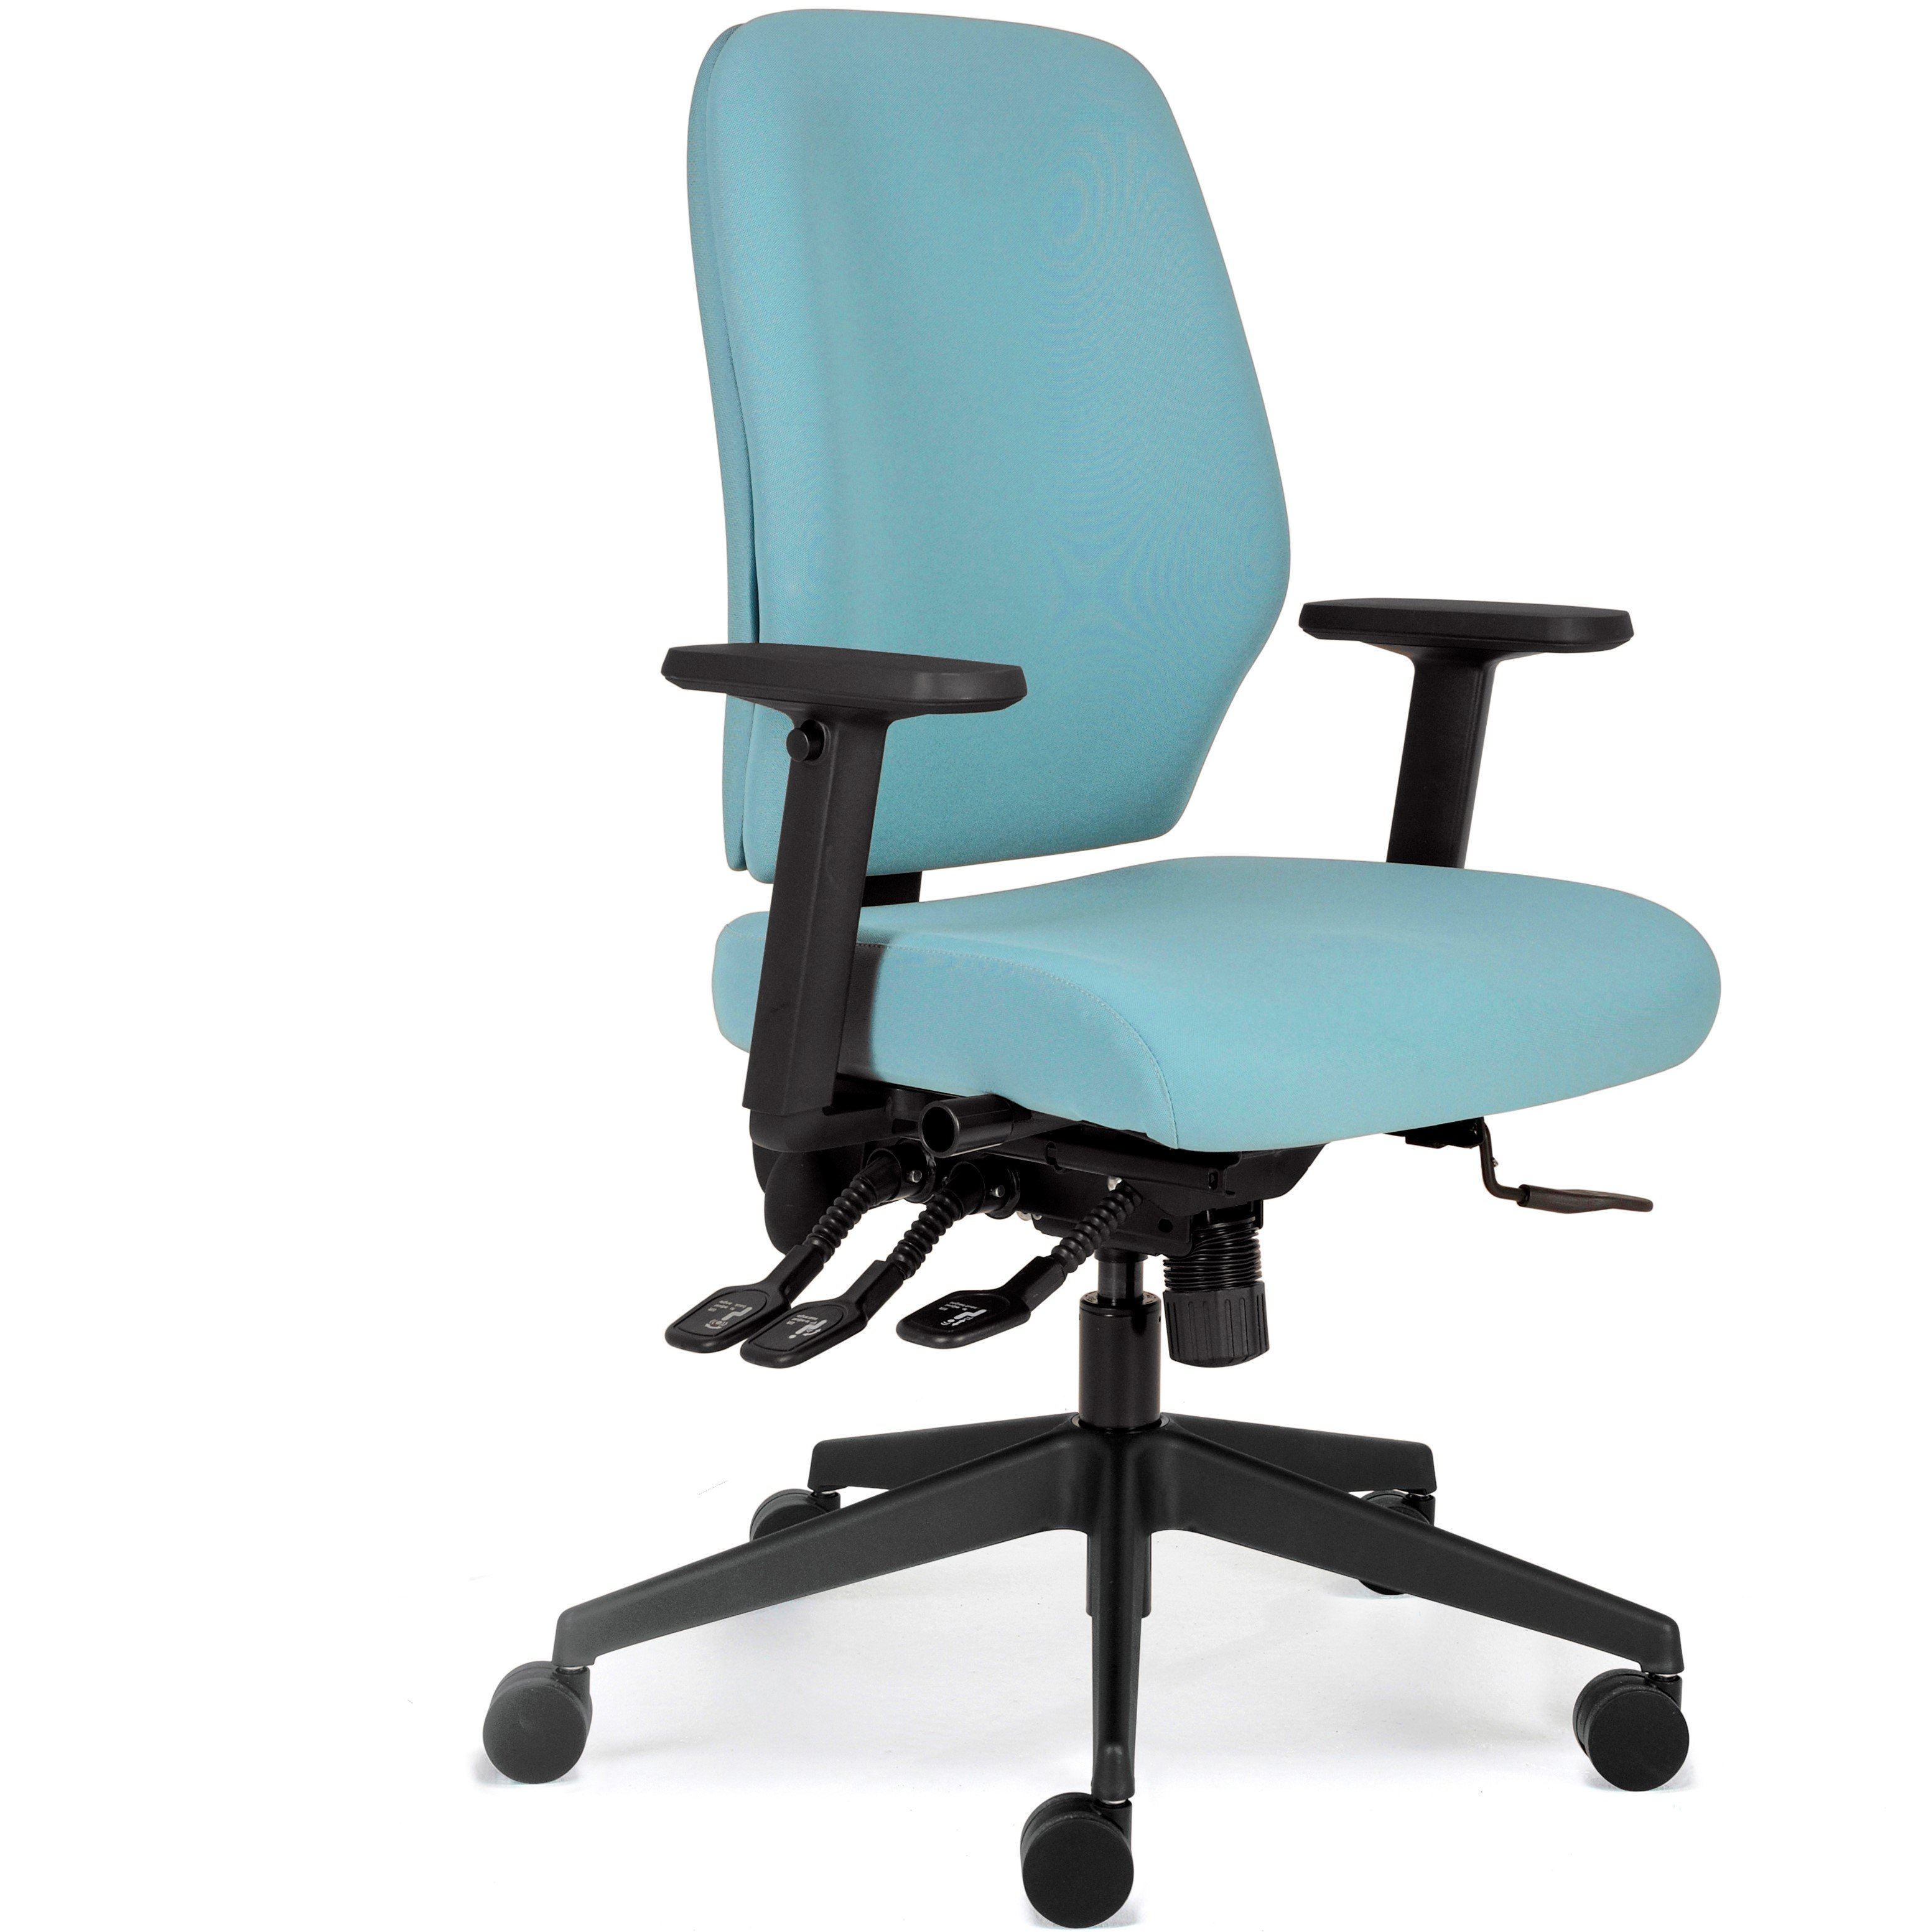 posture executive leather chair kid folding camp chairs with carrying bag mento fabric task